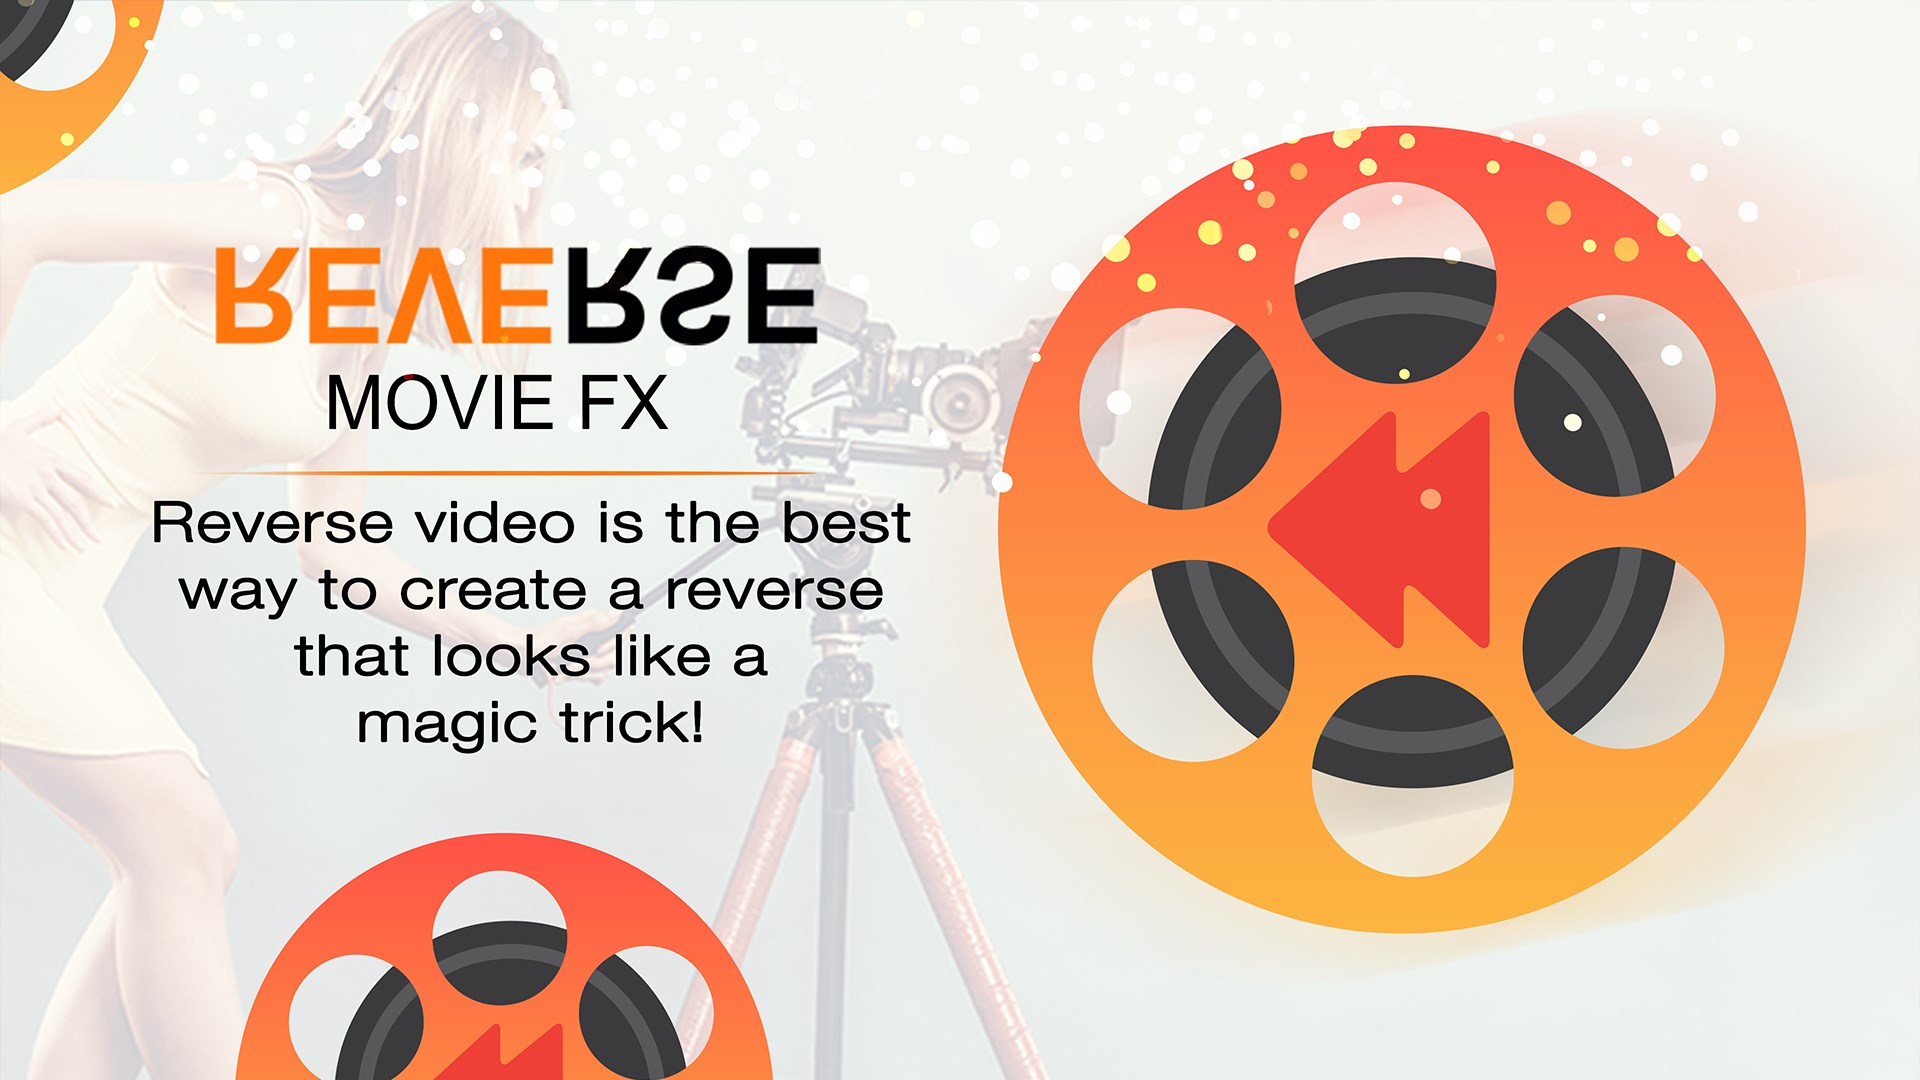 Get Reverse Movie FX - Reverse Video Maker - Microsoft Store